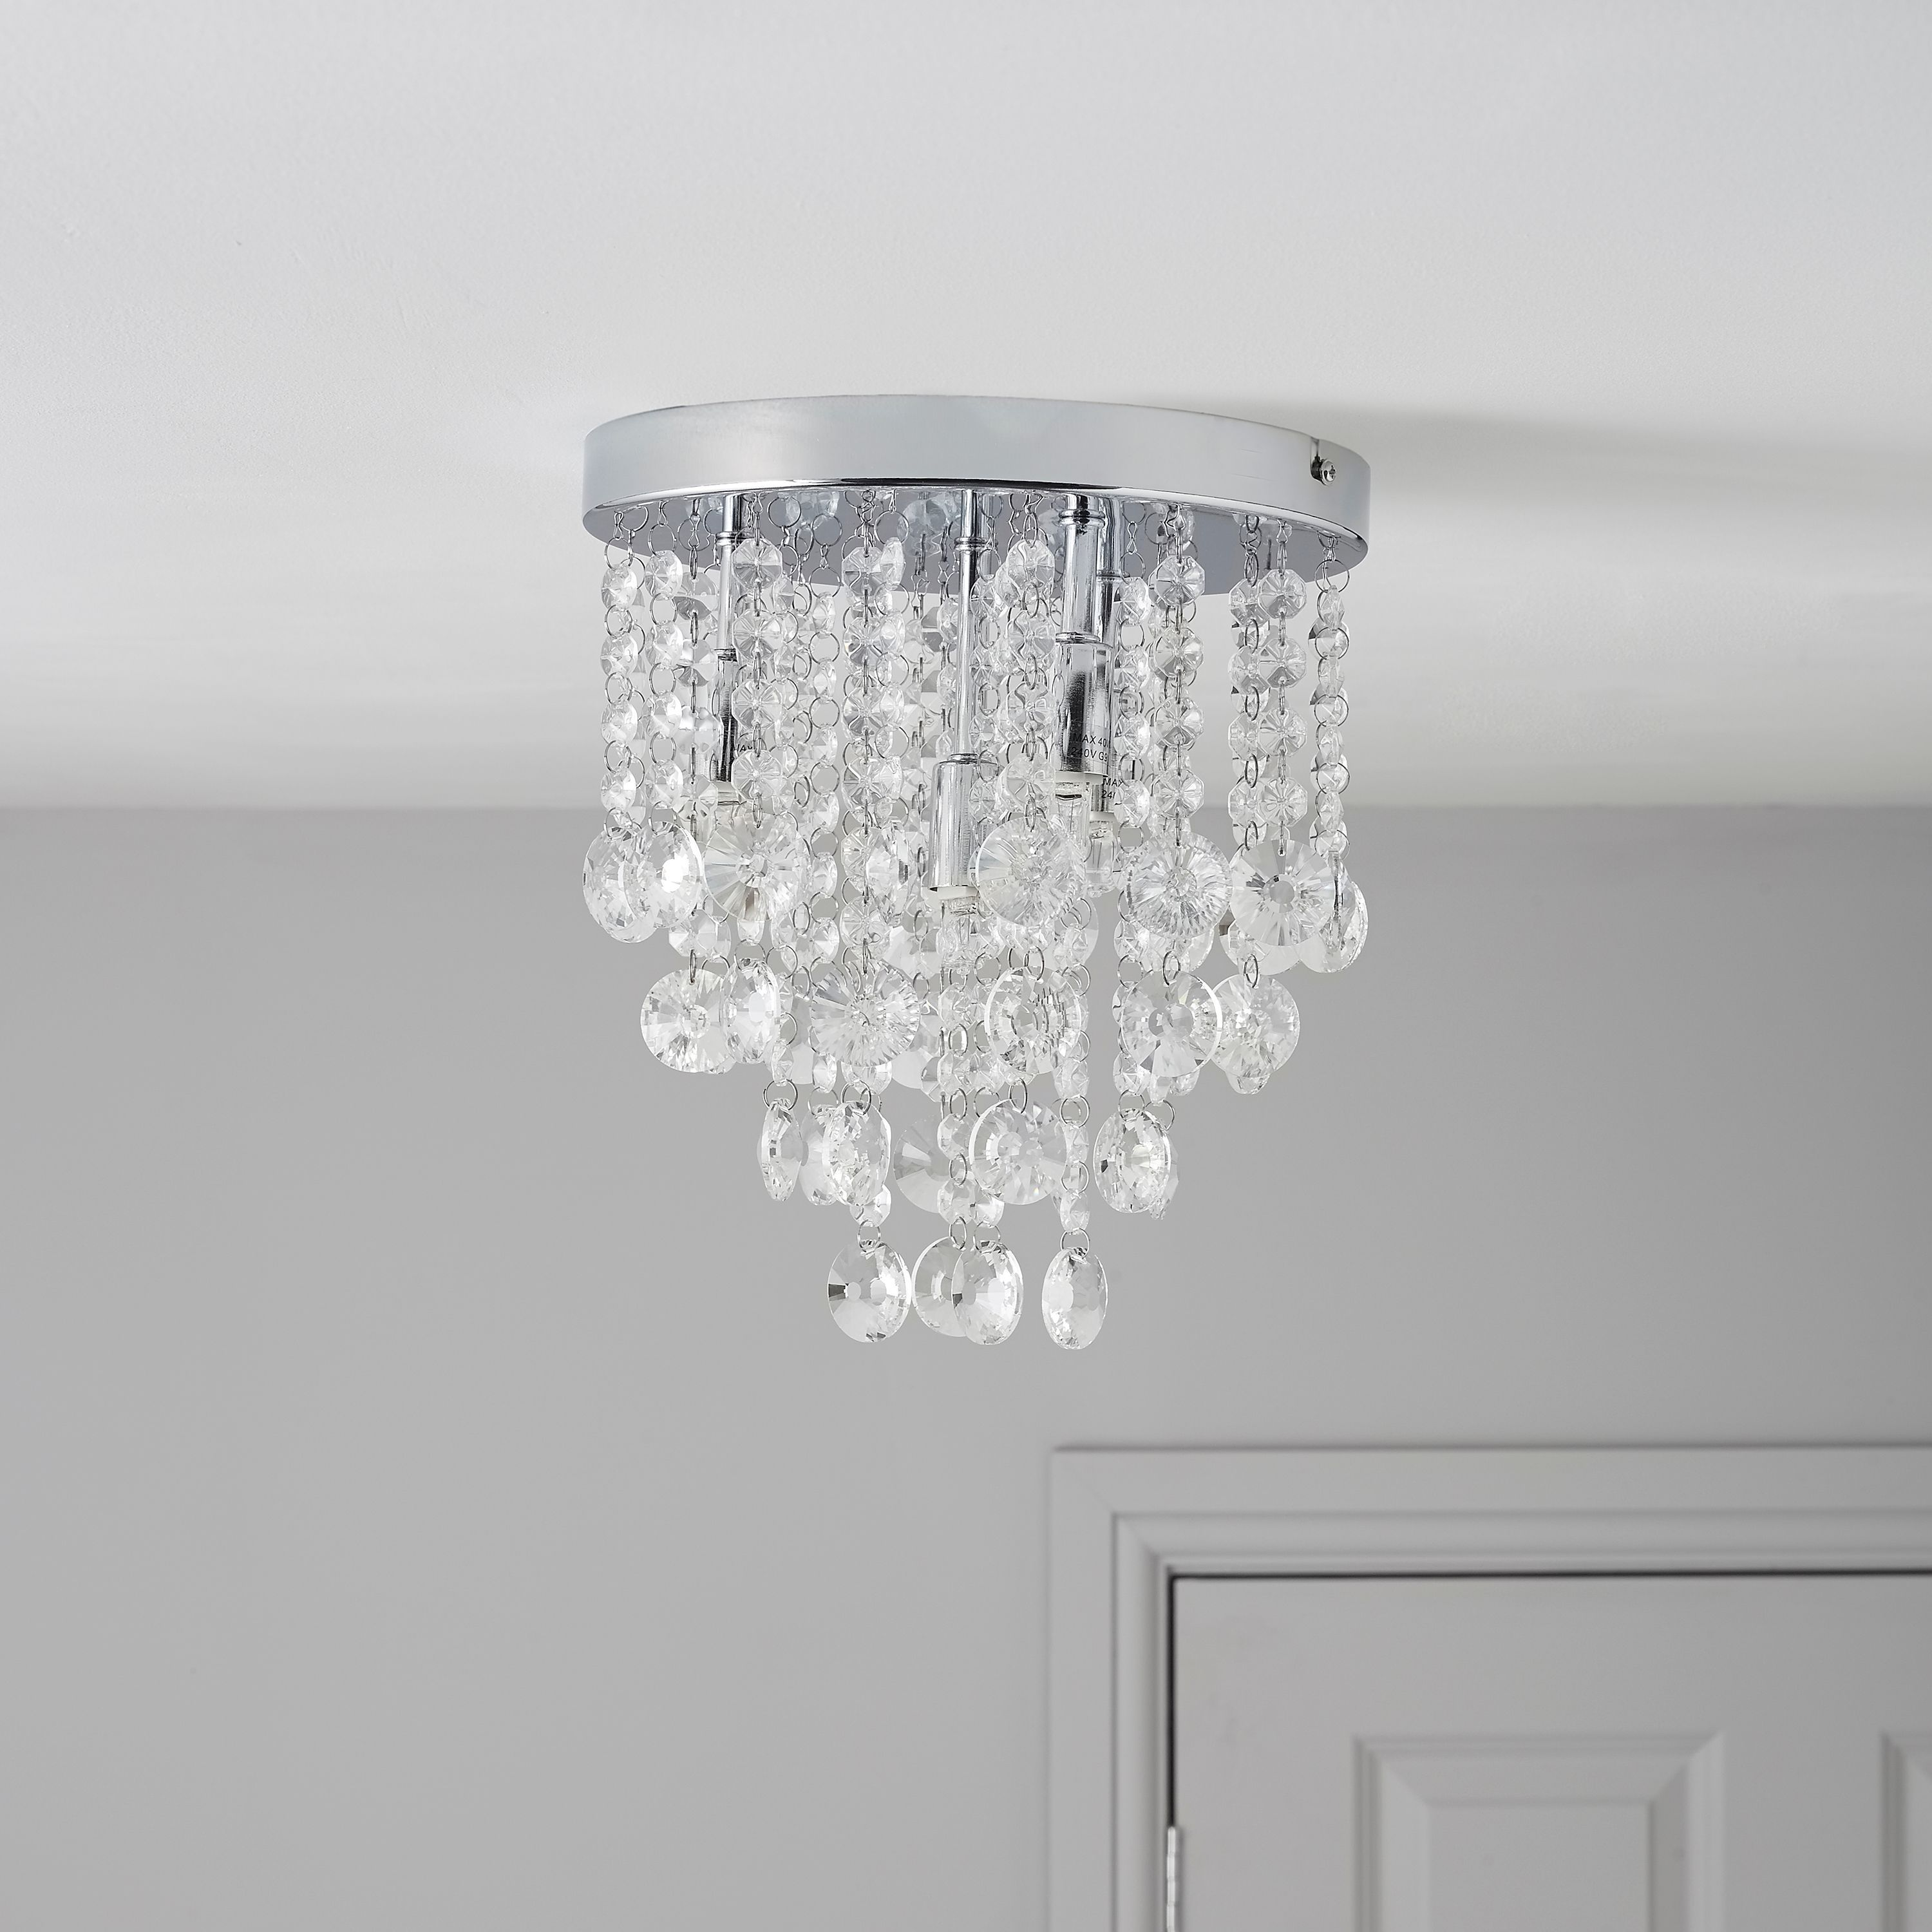 Bathroom Light Fixtures B&Q glimmer crystal droplets chrome effect 4 lamp ceiling light